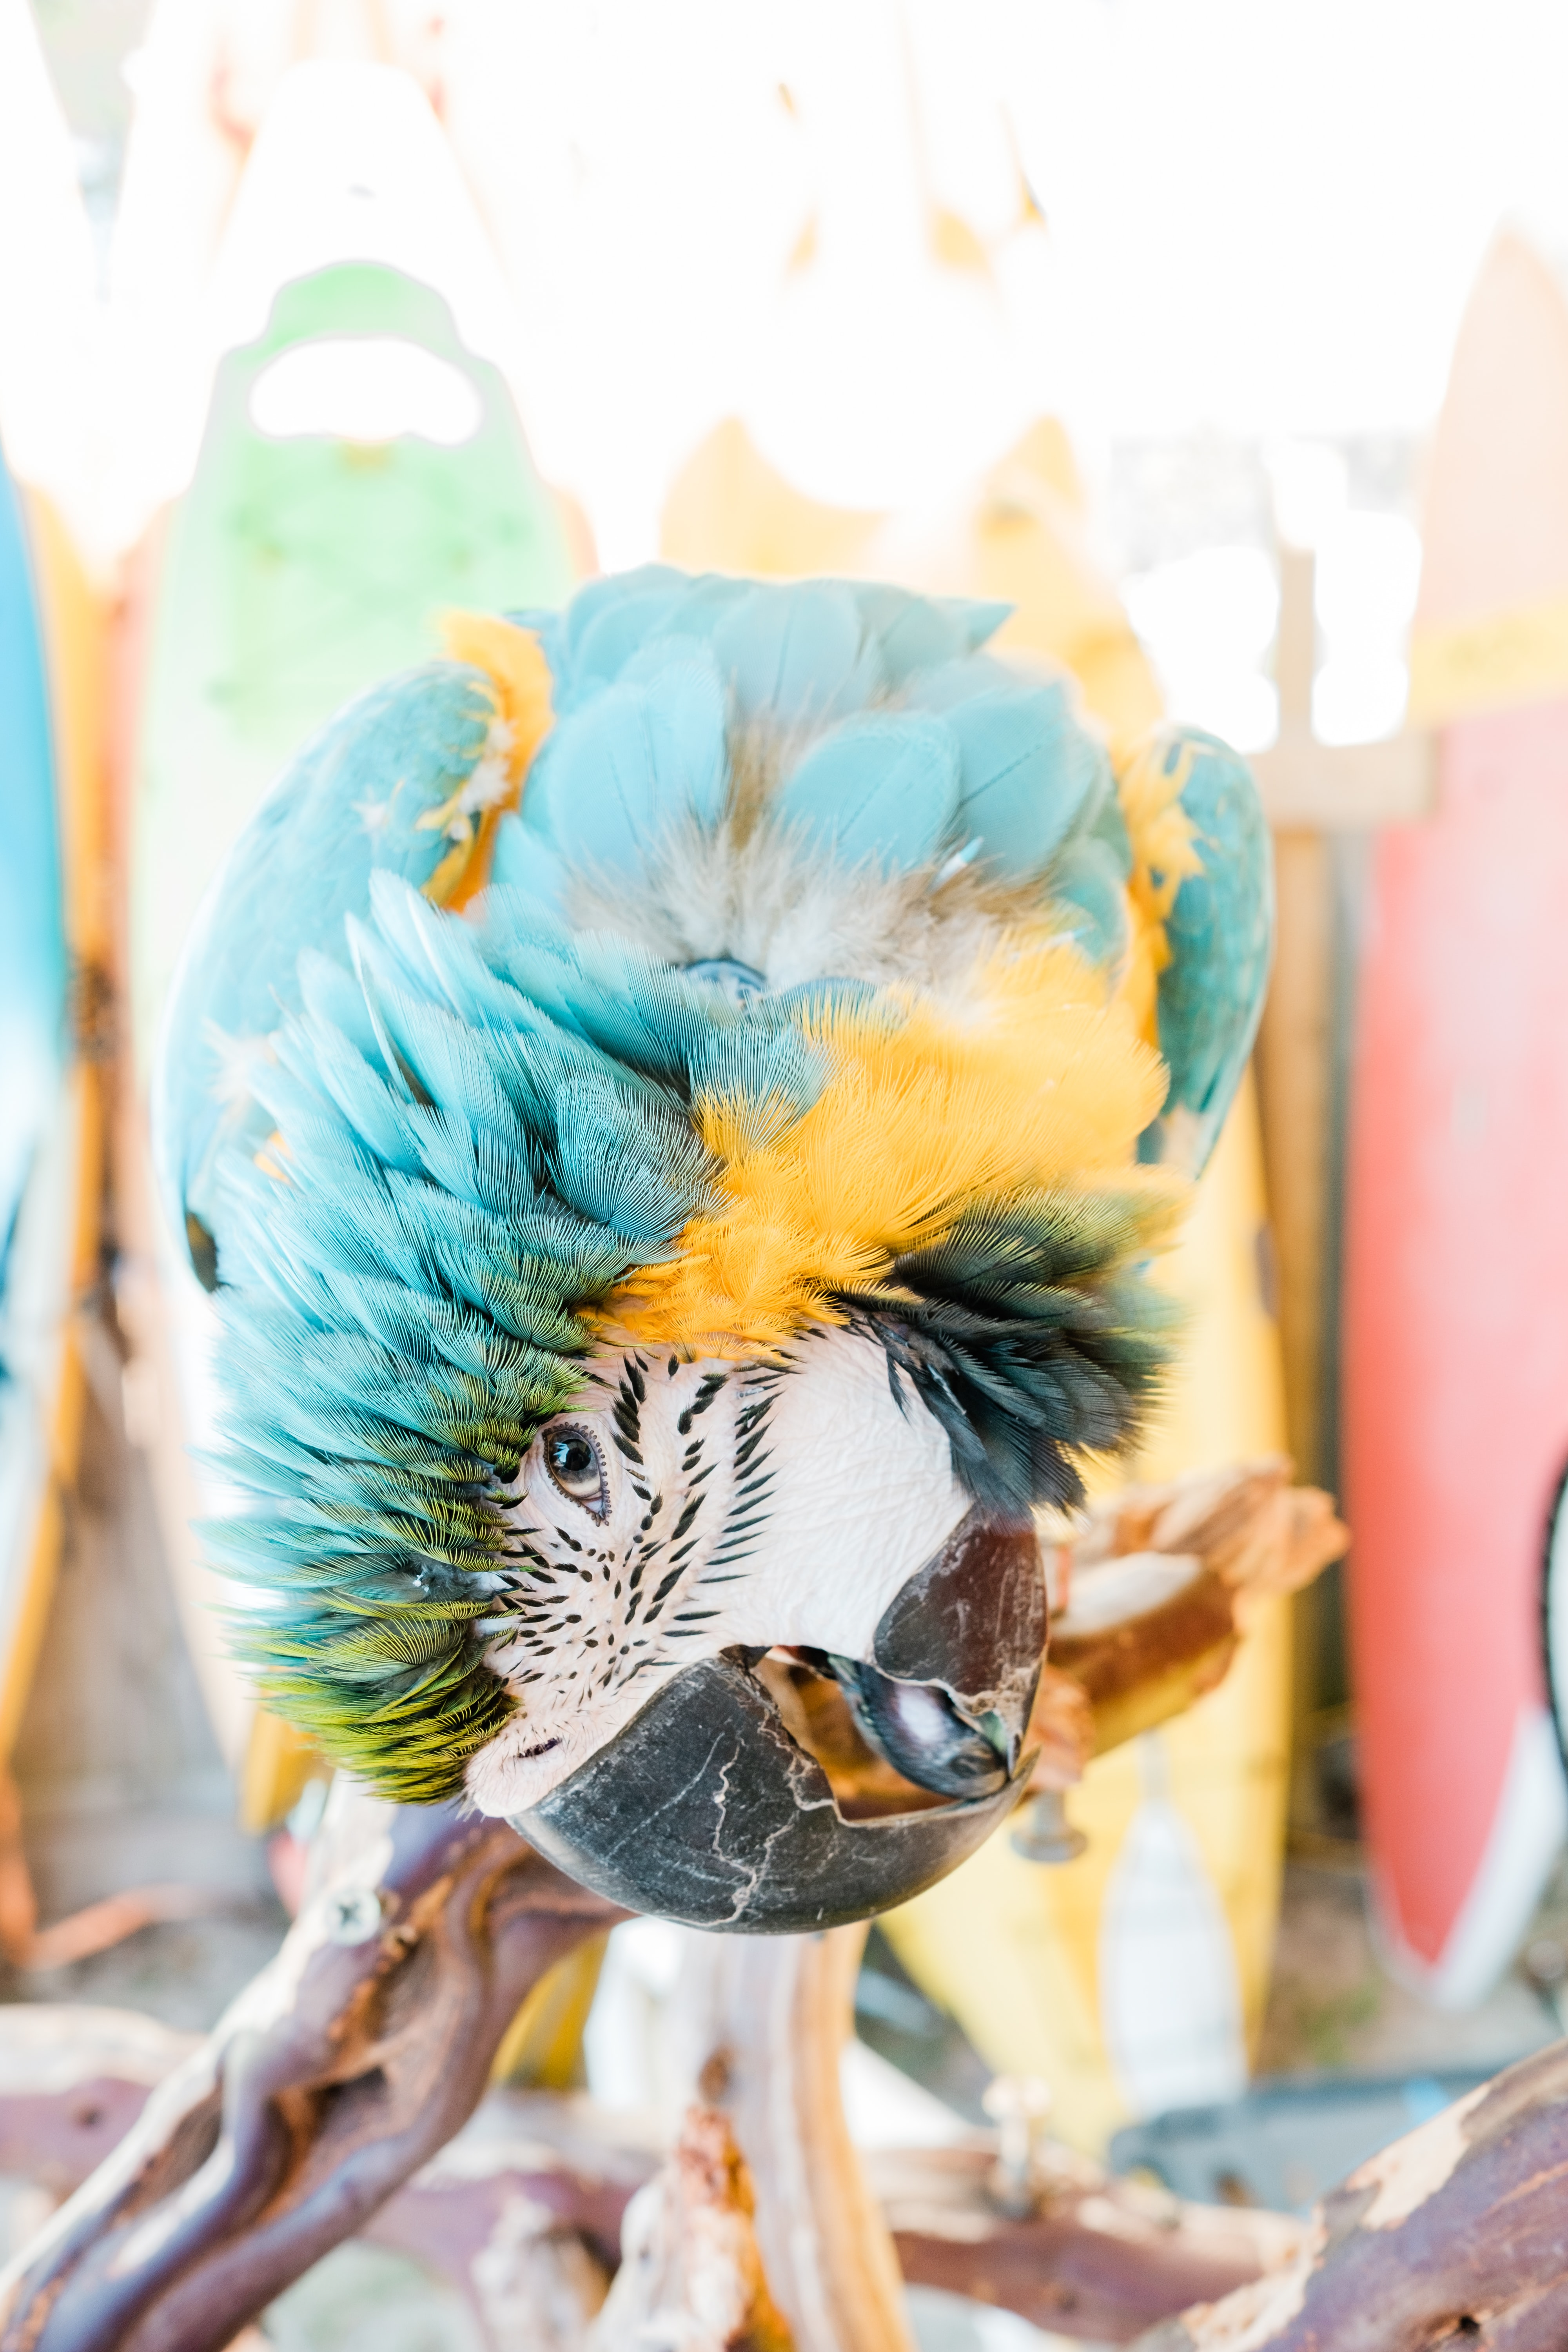 yellow-and-blue macaw